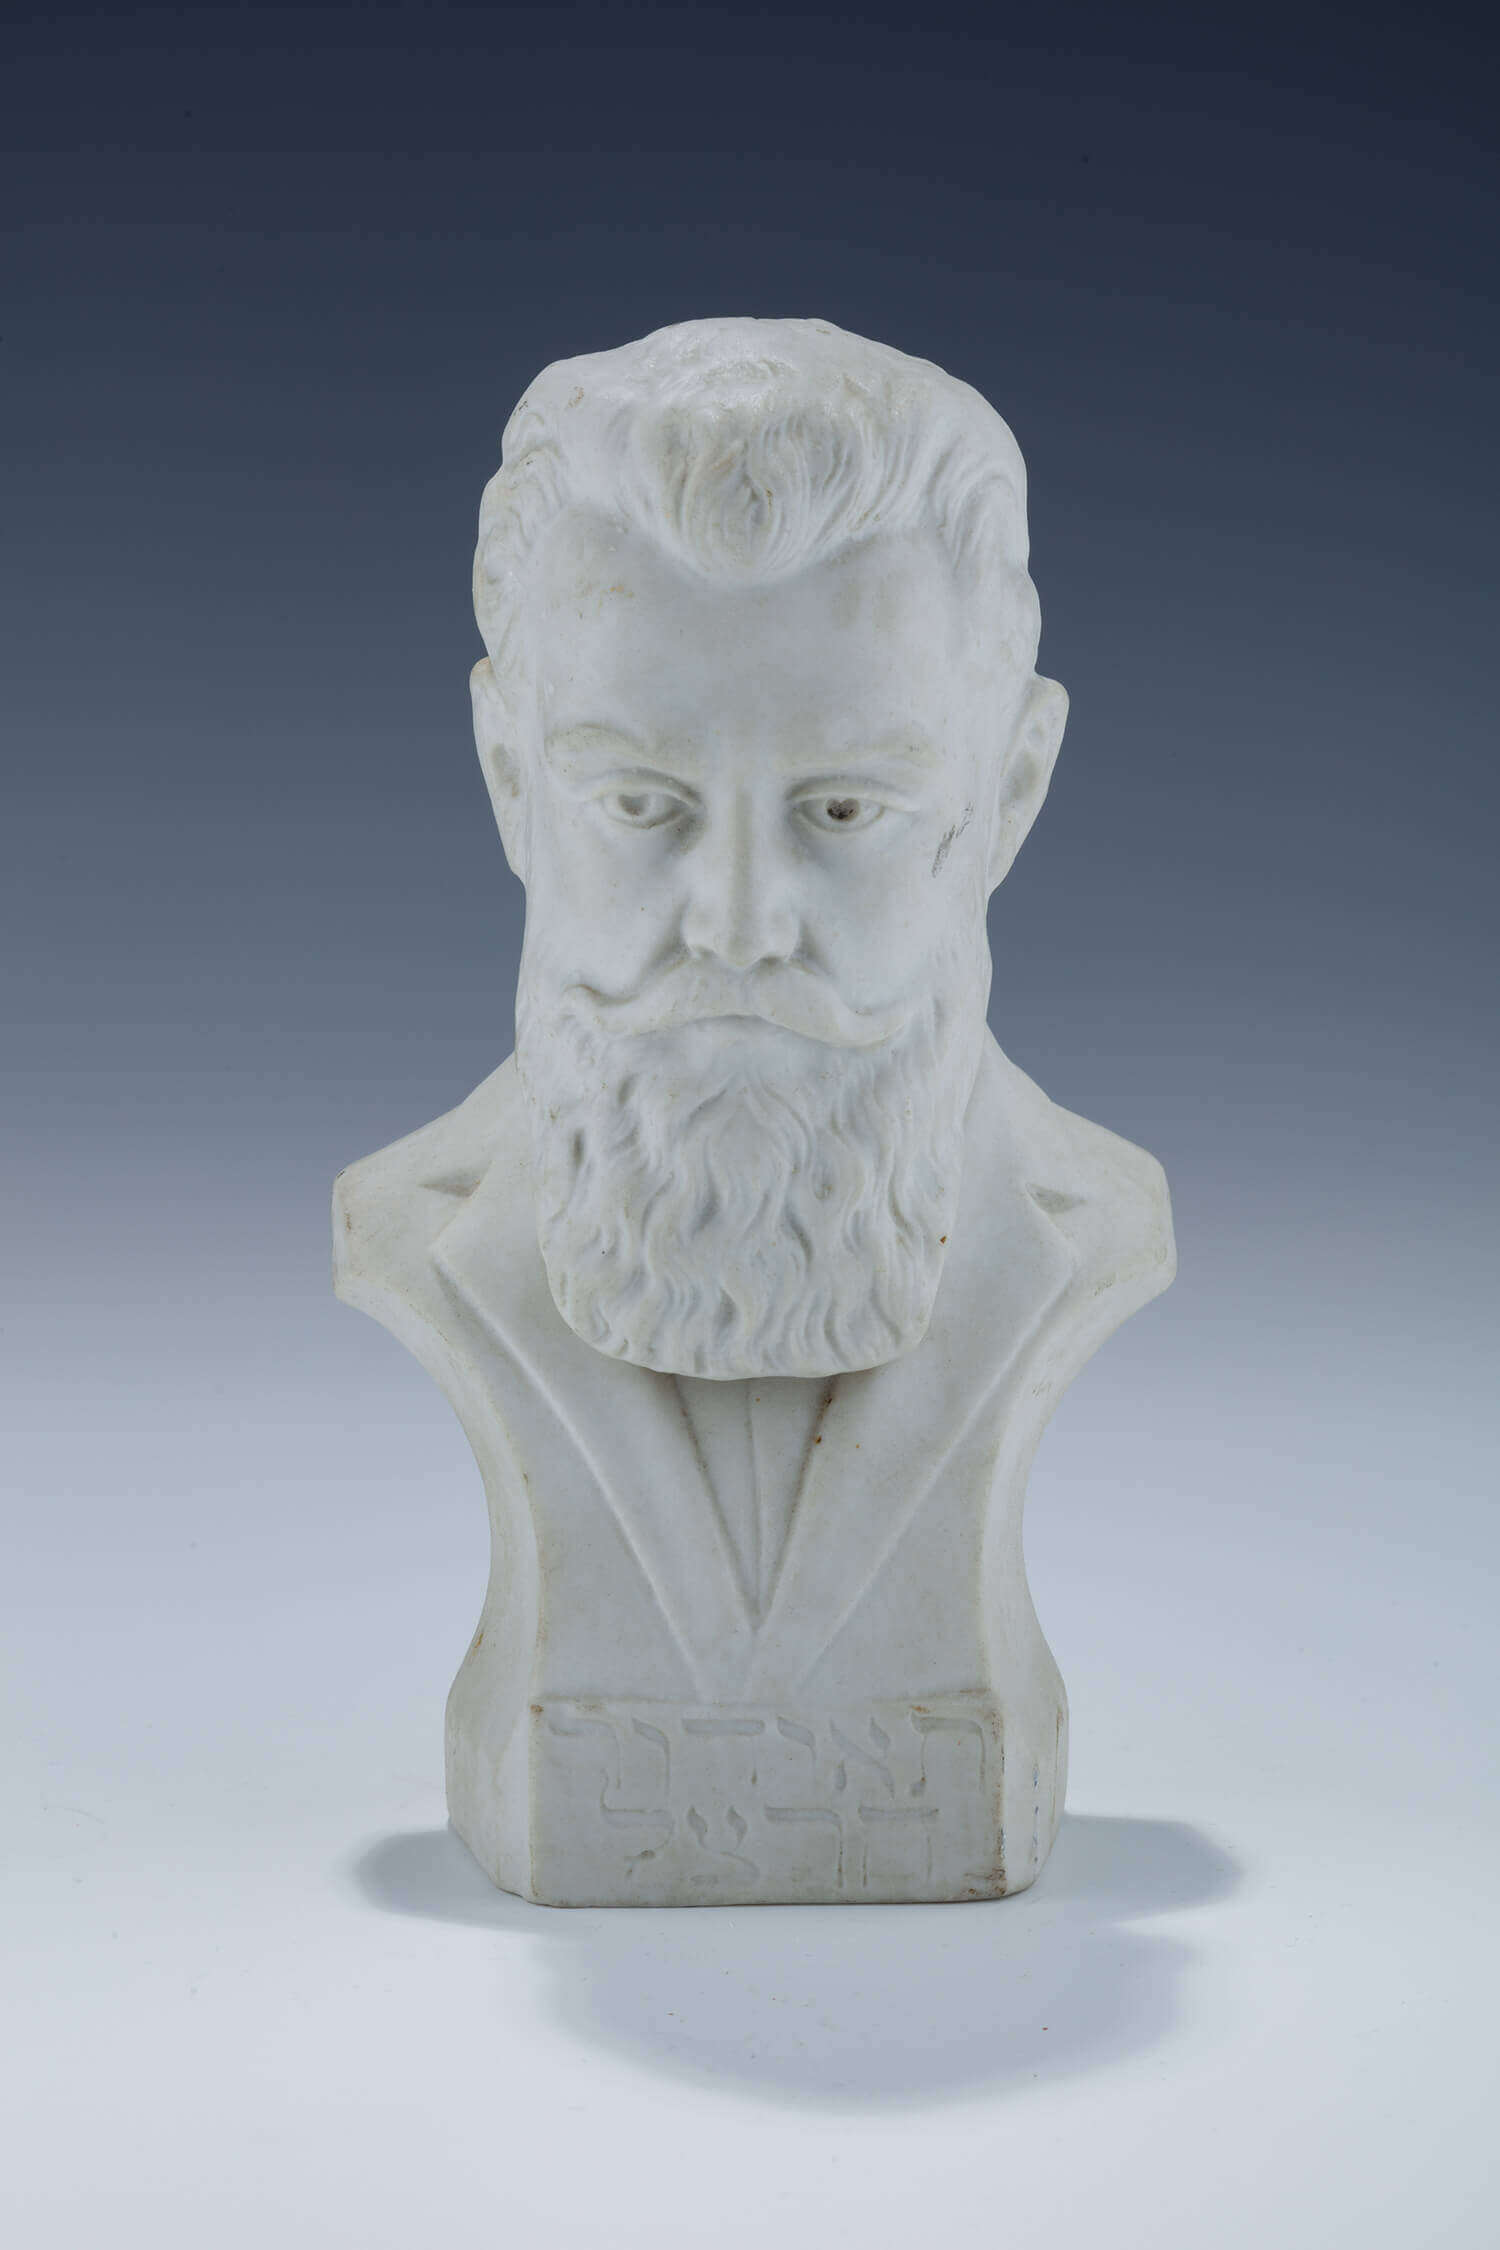 022. A BISQUE BUST OF THEODOR HERZL